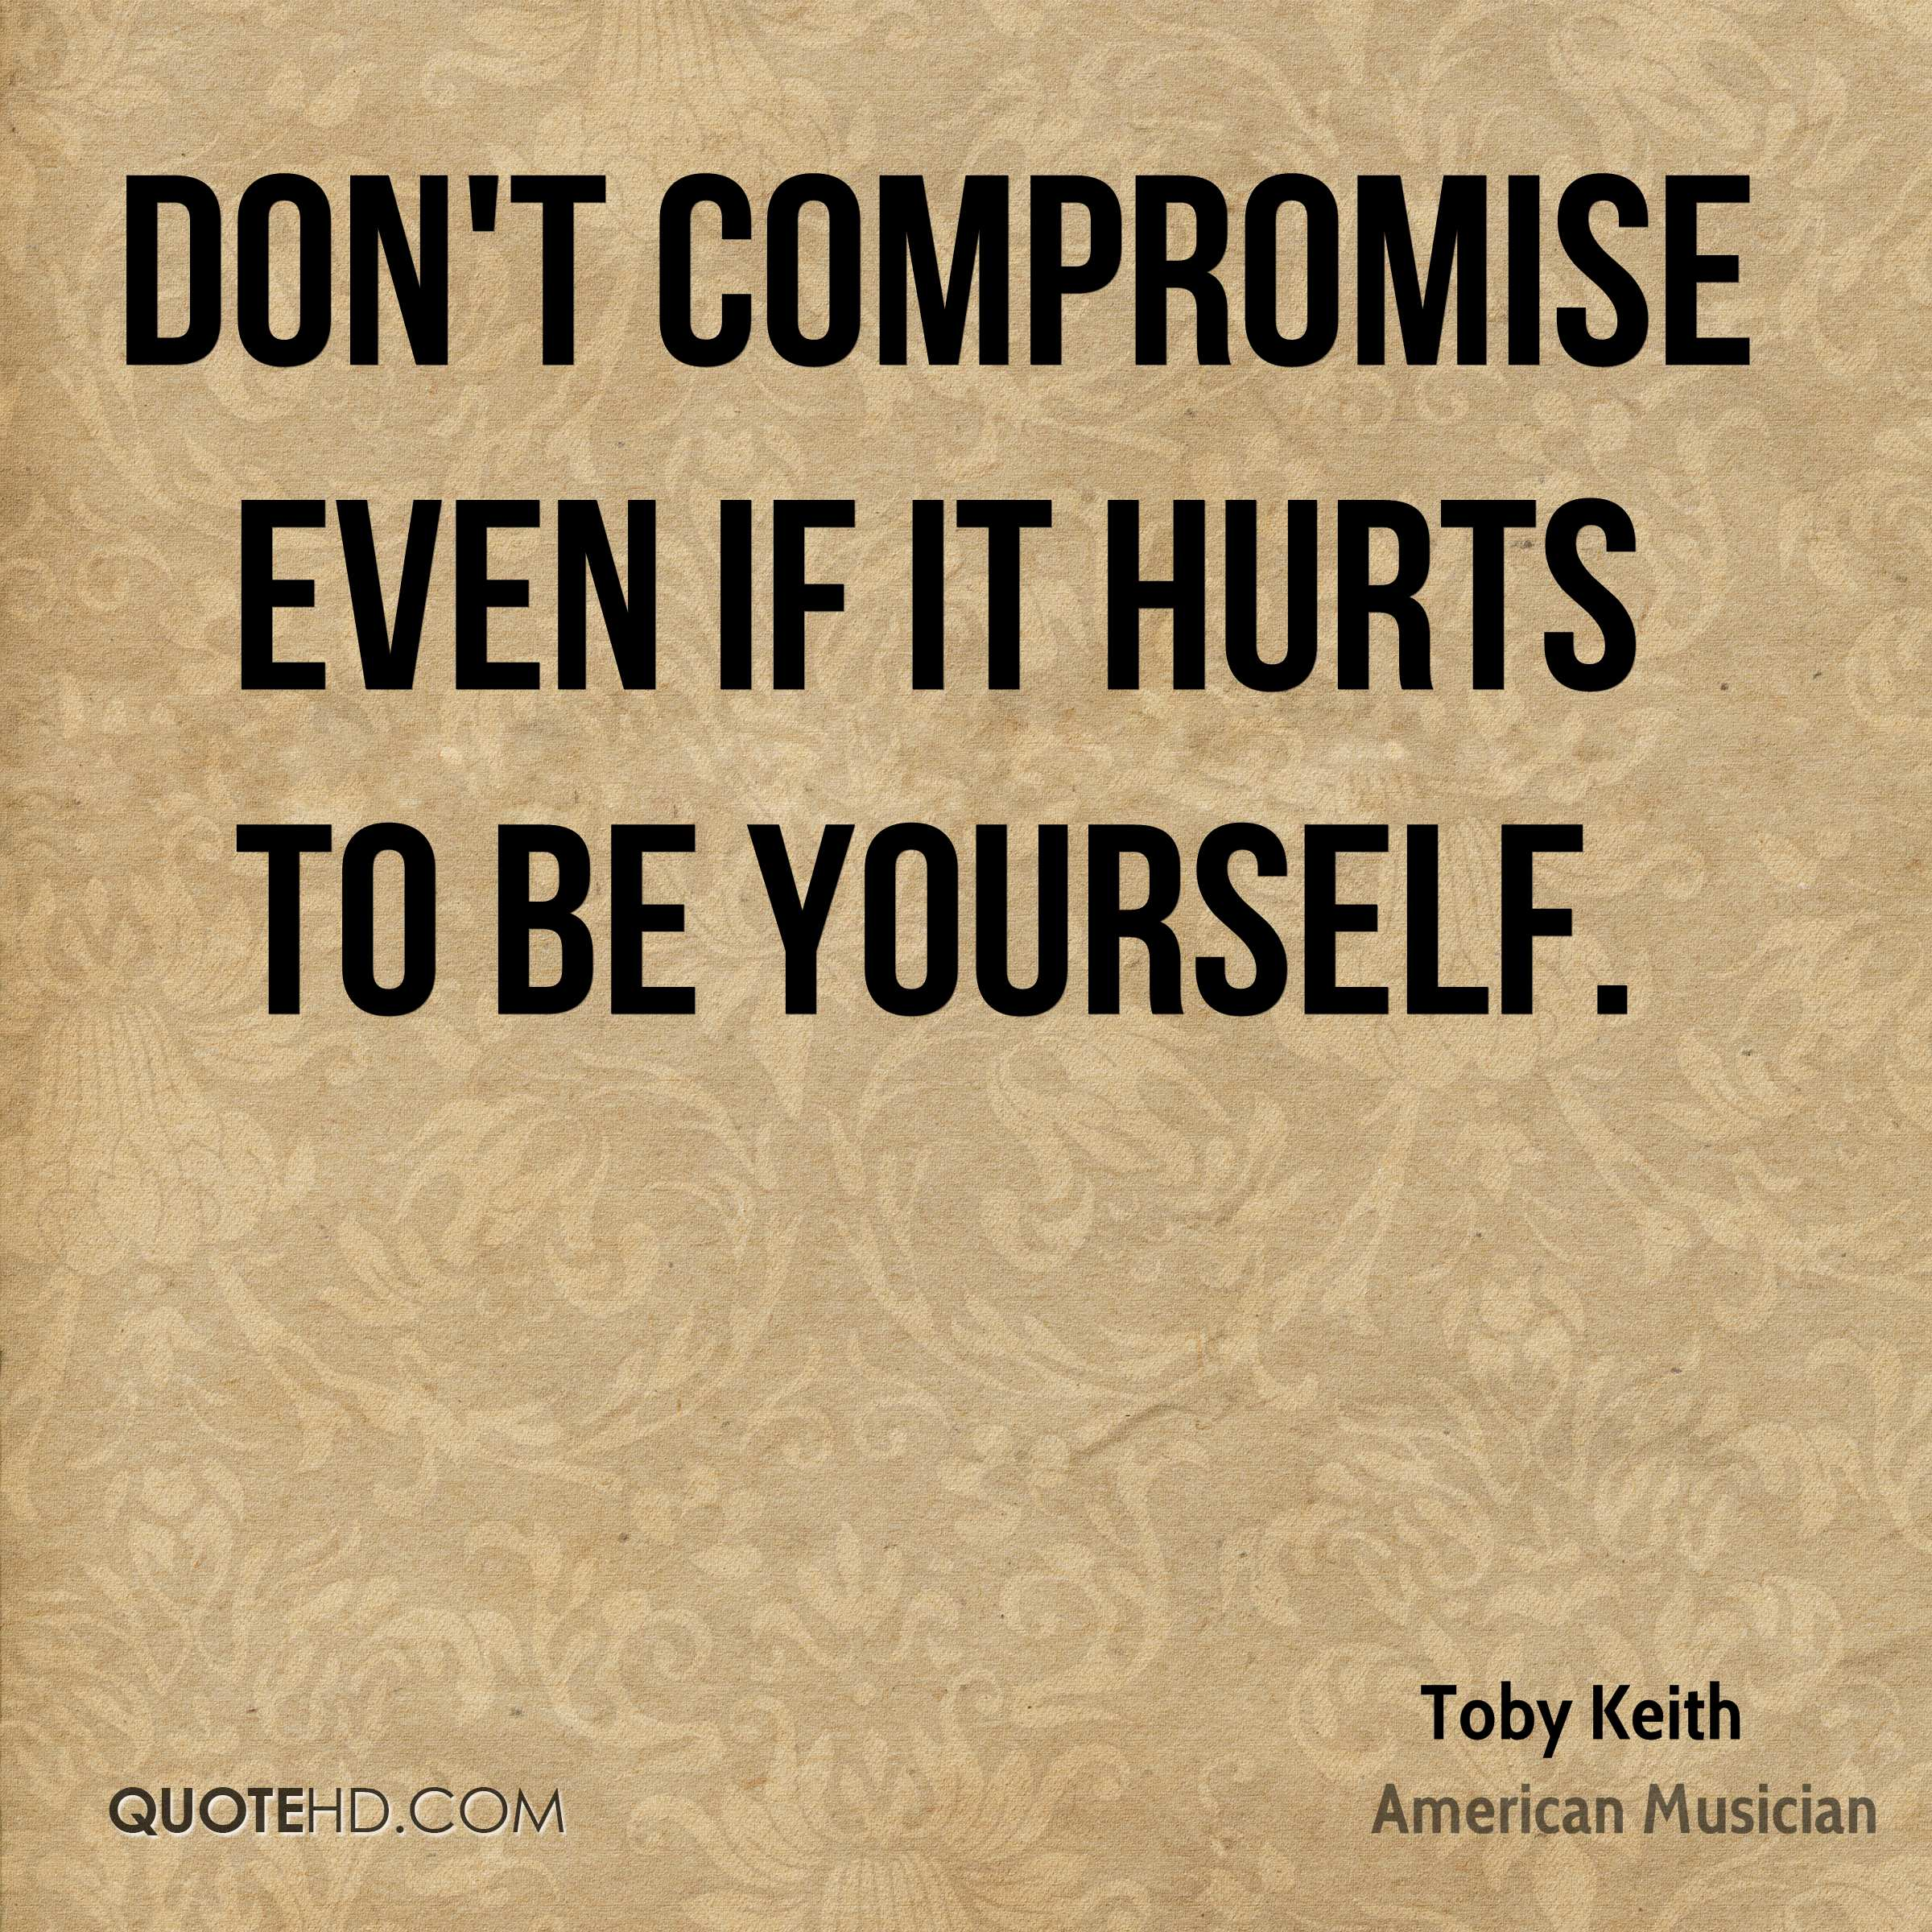 Peacemaker Quotes 63 Best Quotes And Sayings About Compromise